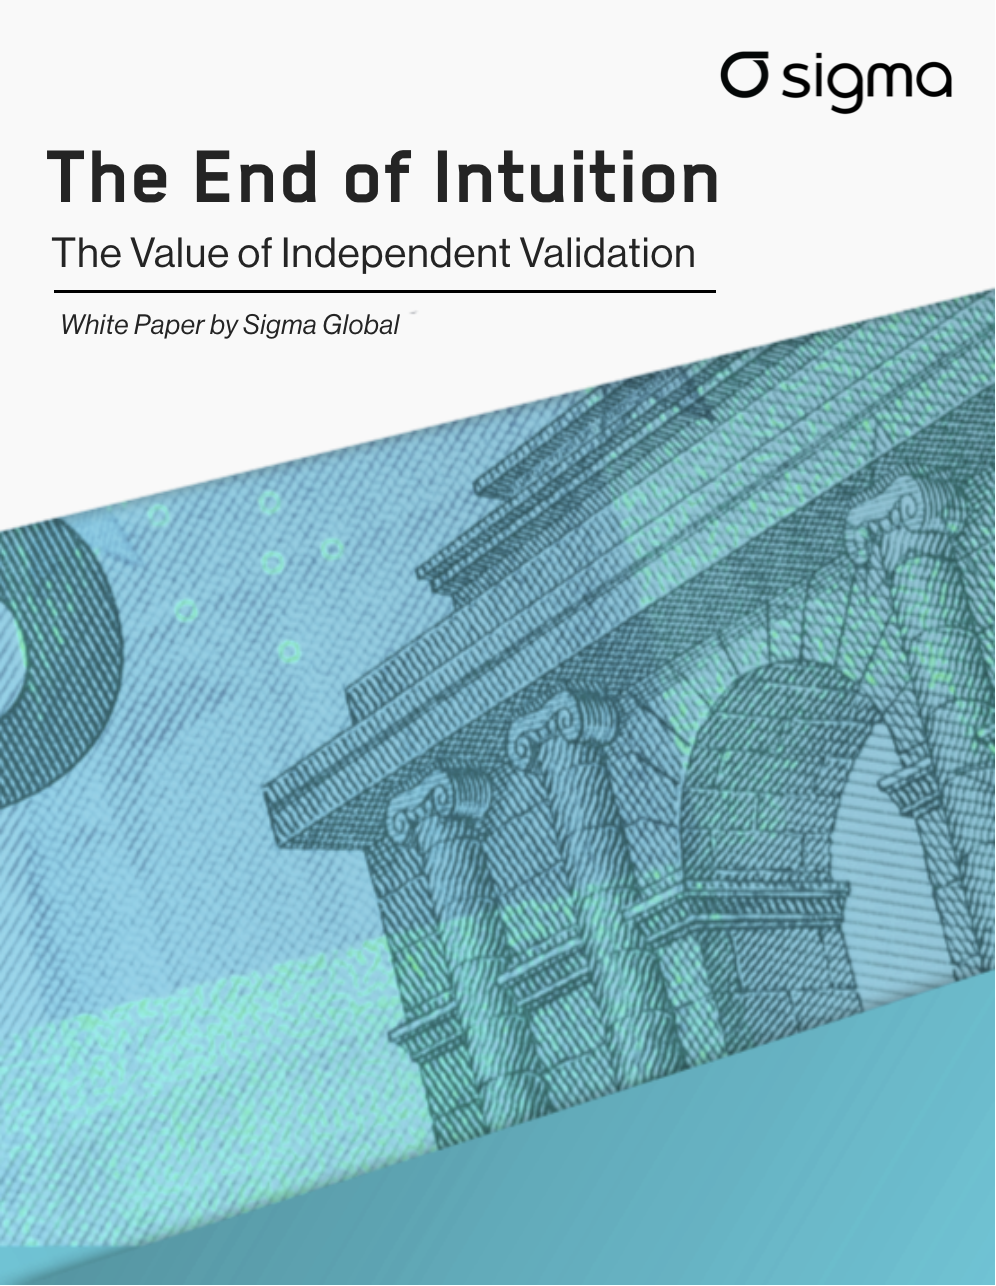 end_of_intuition_whitepaper.png